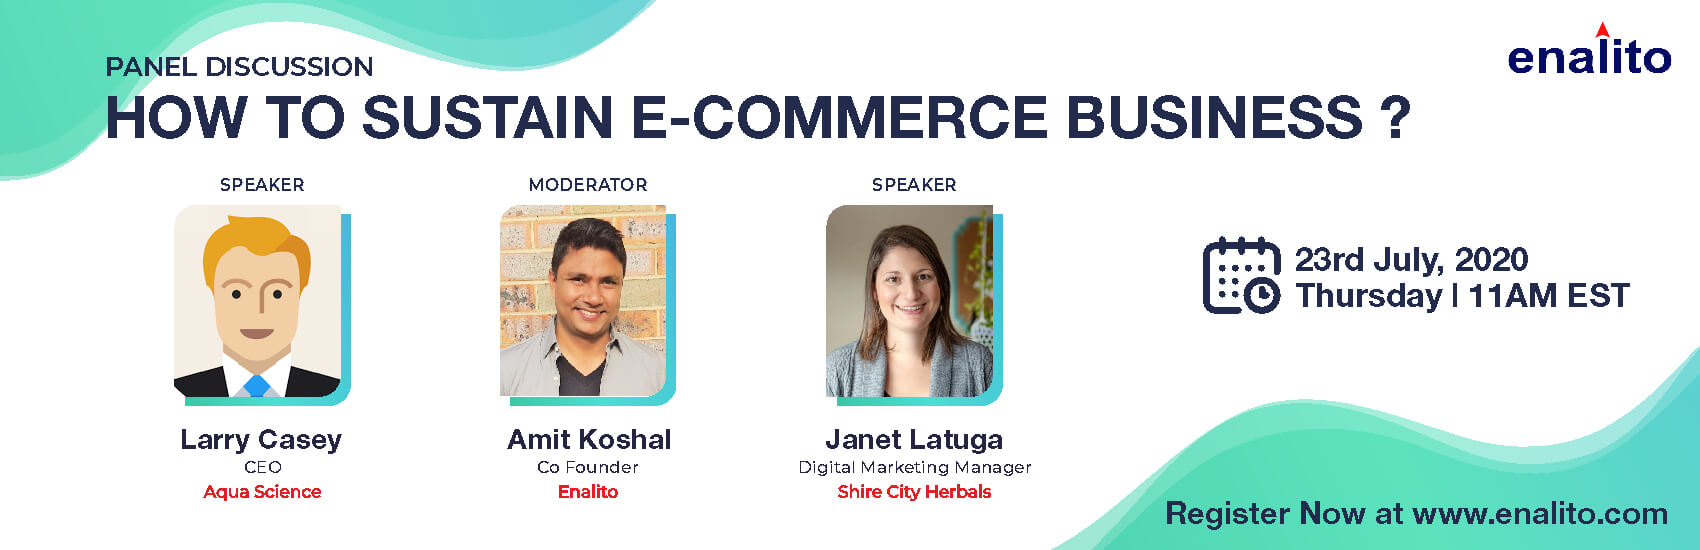 How To Sustain eCommerce Business?